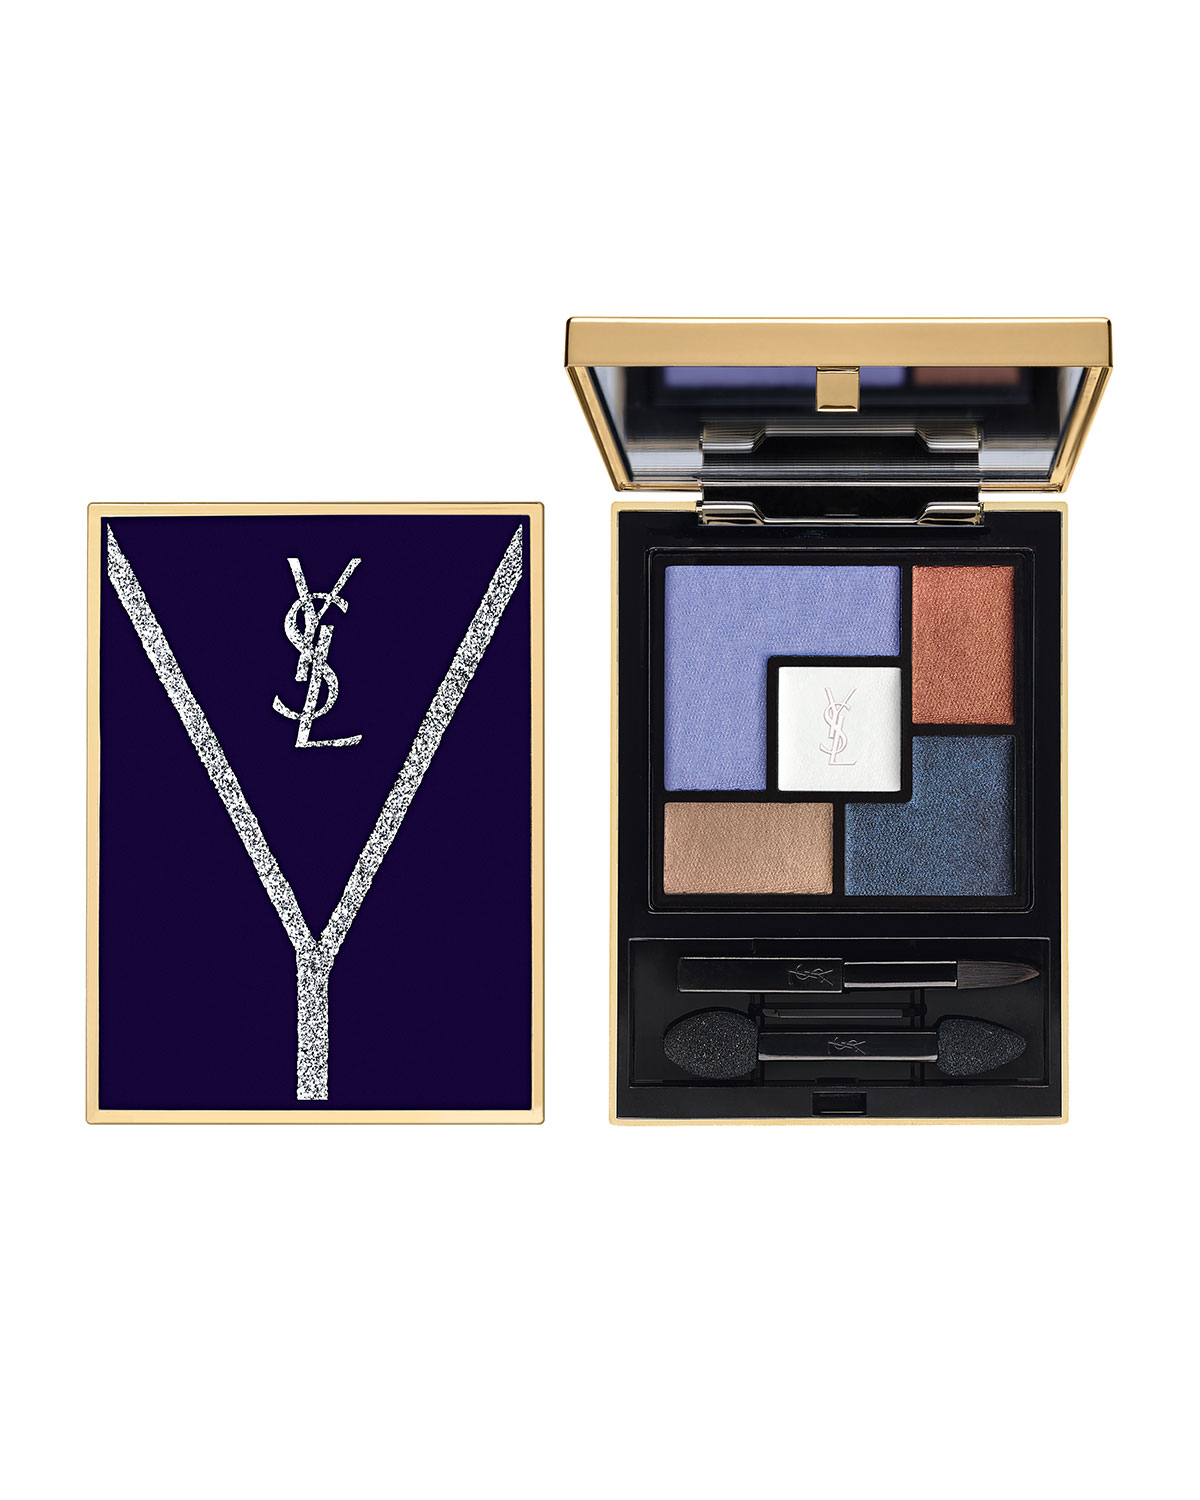 Limited Edition Yconic Fall 2018 Look: Couture Eye Shadow Palette